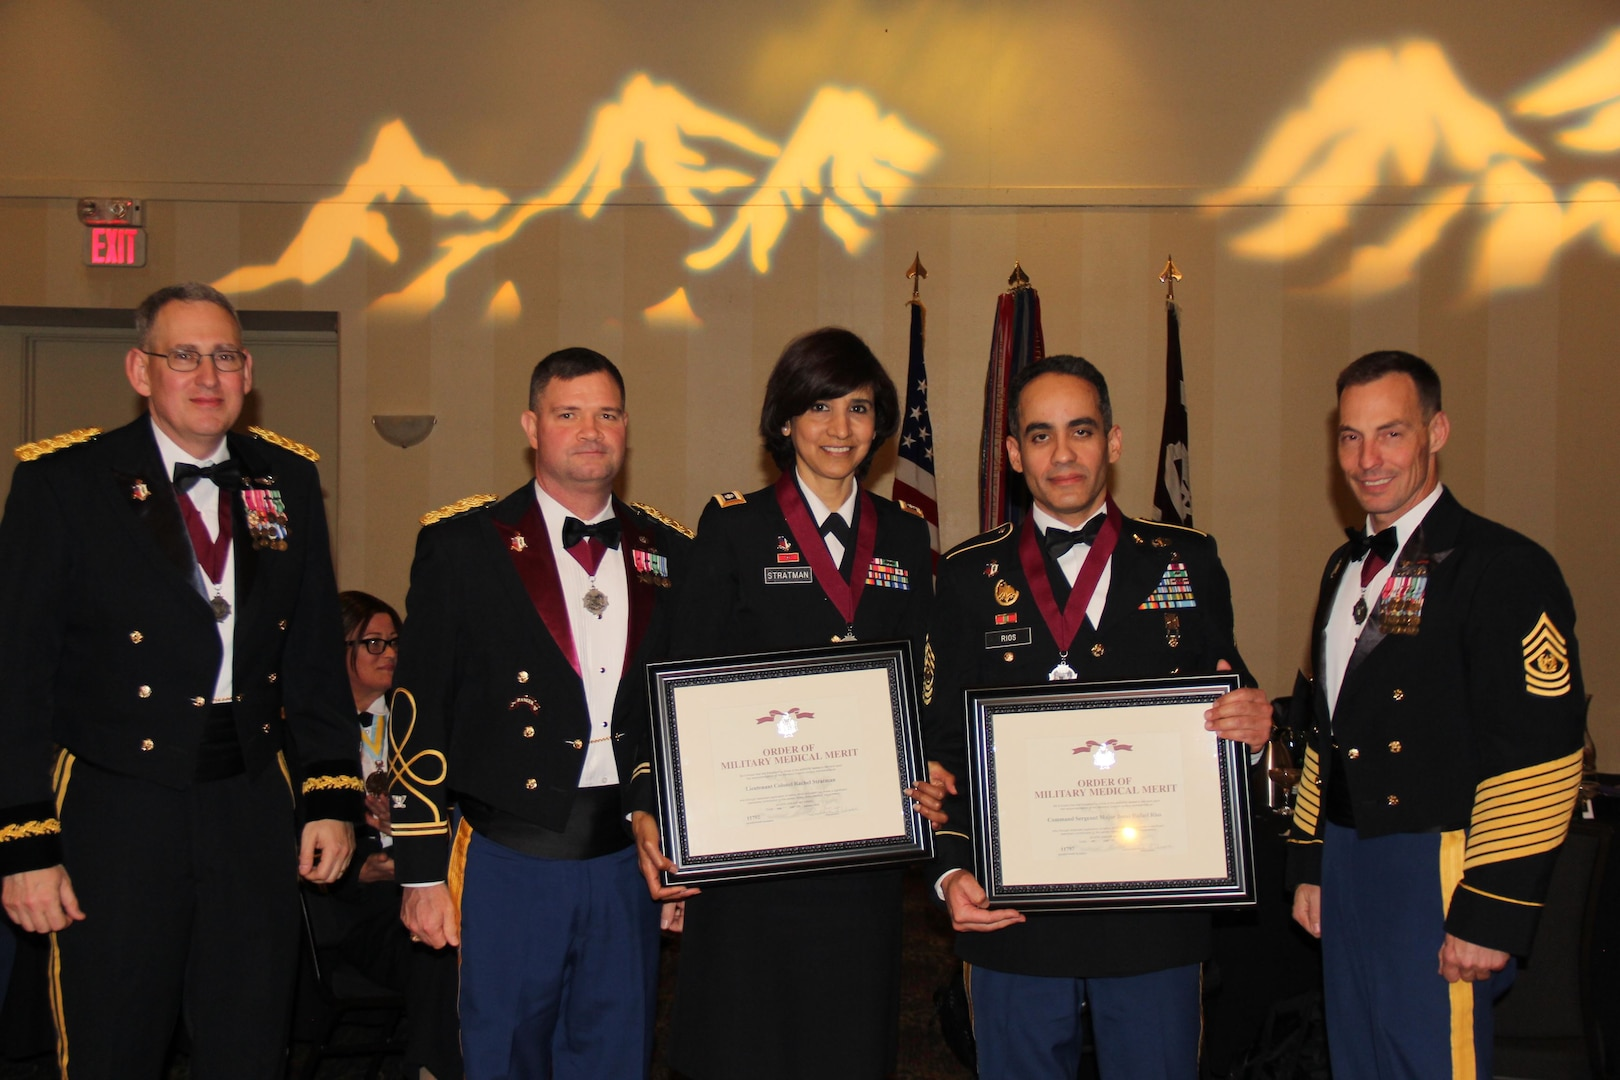 MEDDAC-AK leaders honored with O2M3